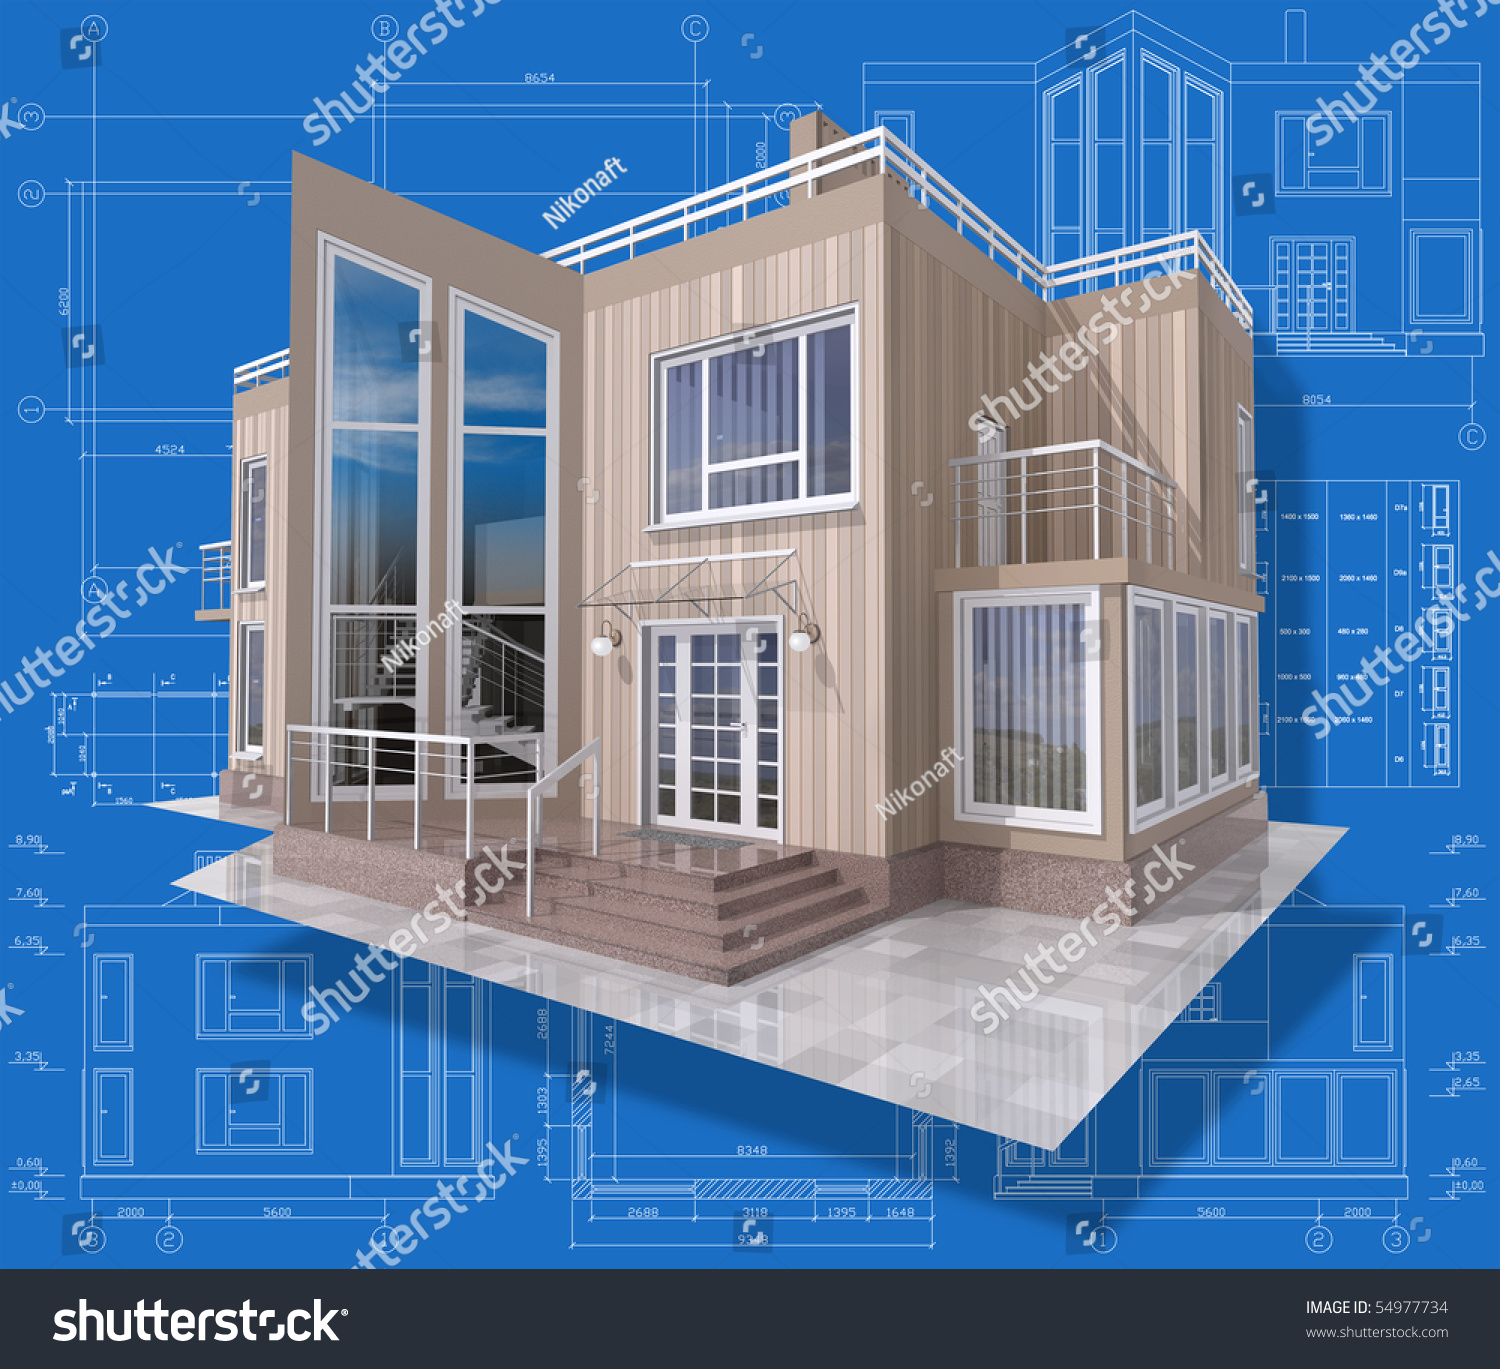 3d isometric view of the residential house on architect